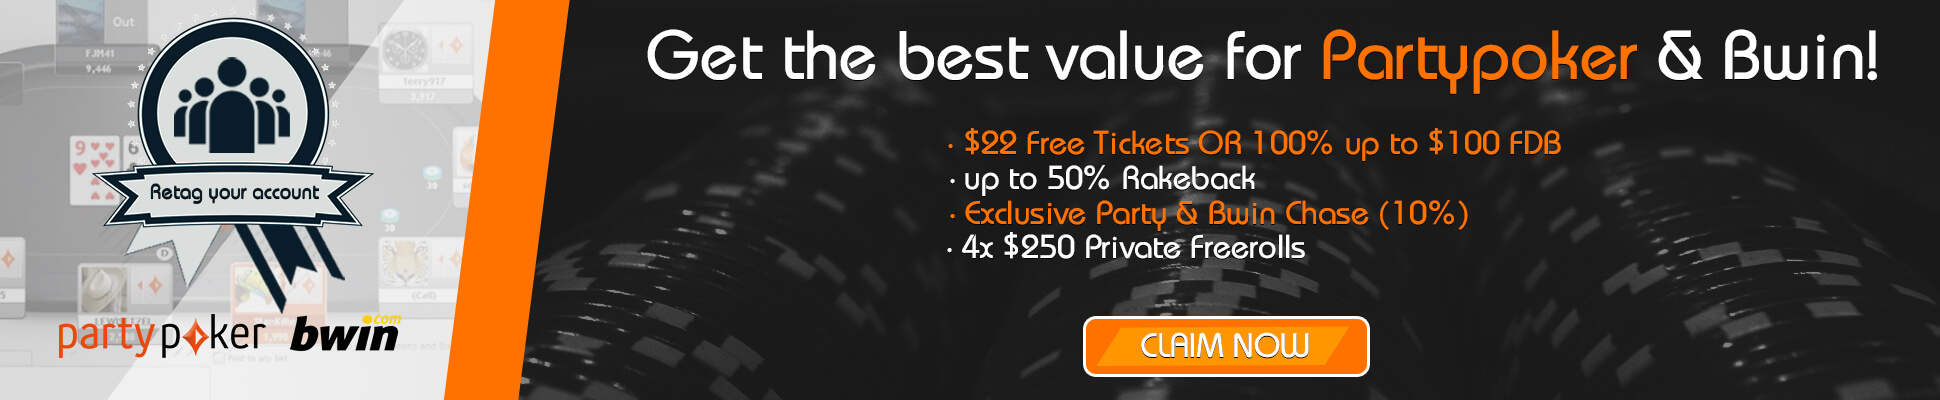 partypoker-new-banners-slider-December-2